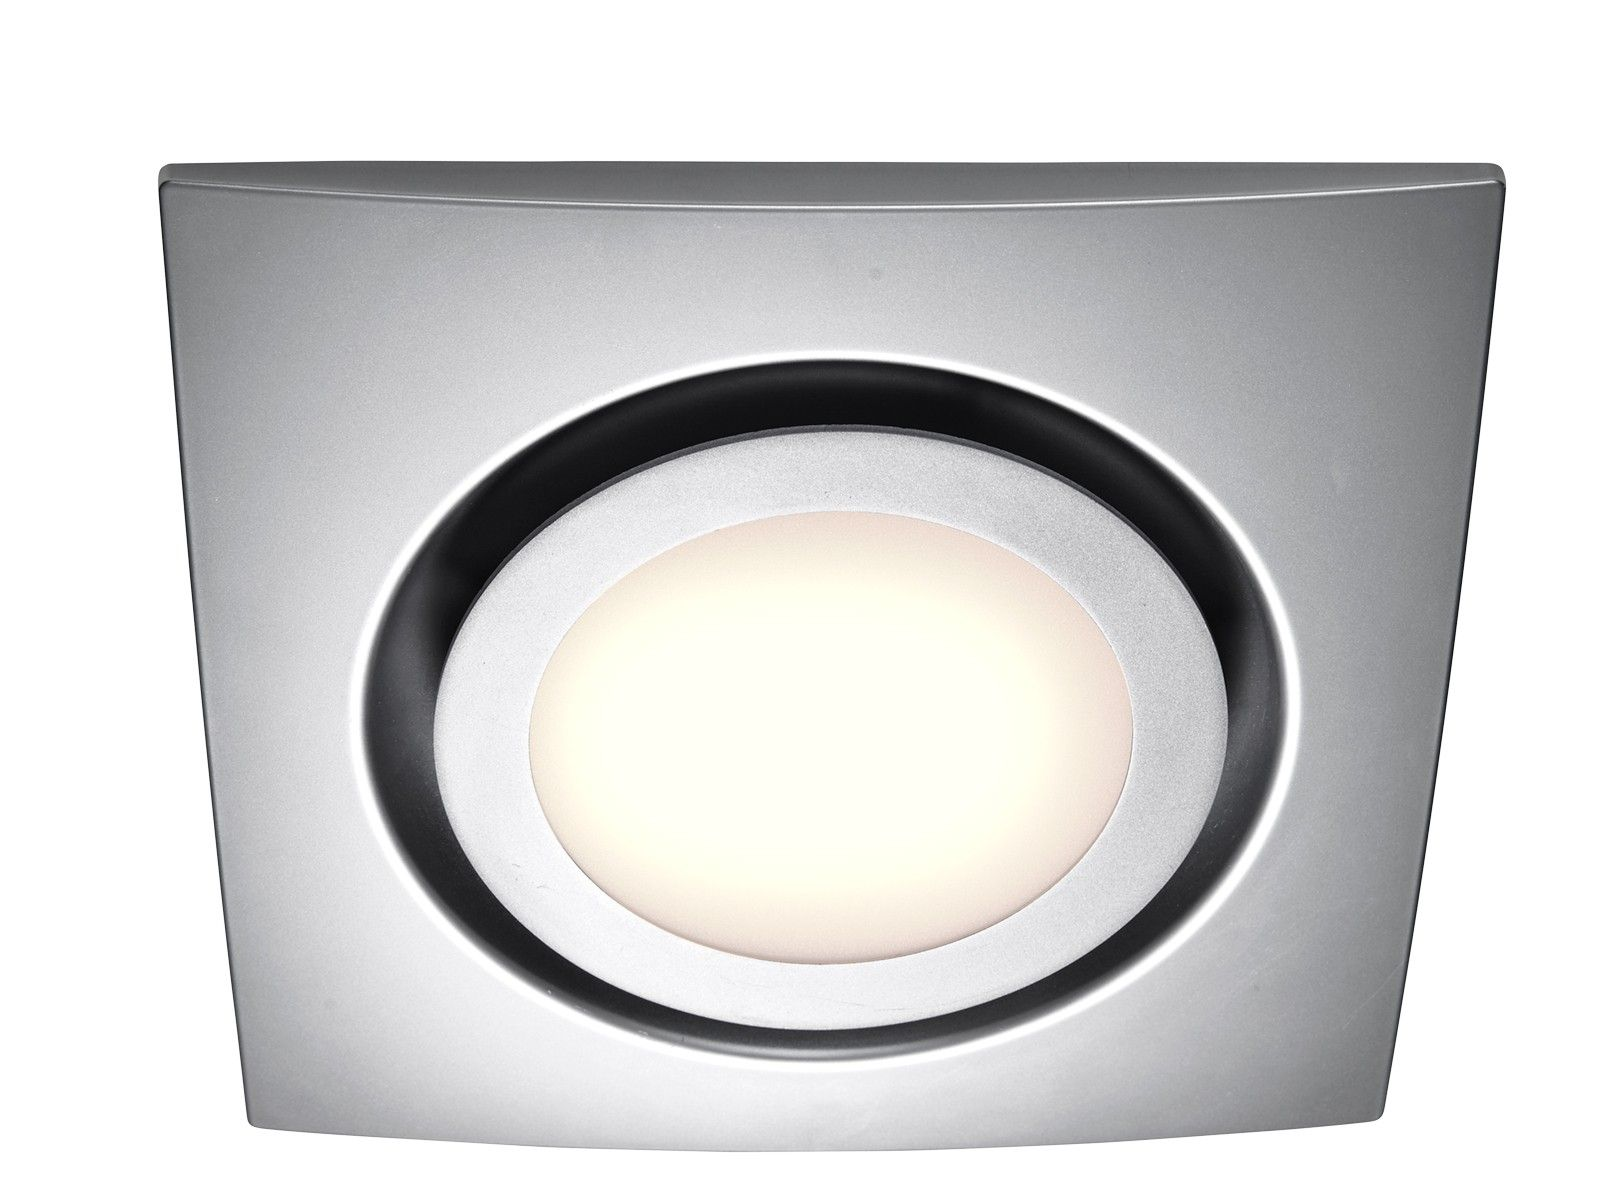 Bathroom Exhaust Fan Cover Latest Posts Under Bathroom Exhaust Fan Cover Bathroom